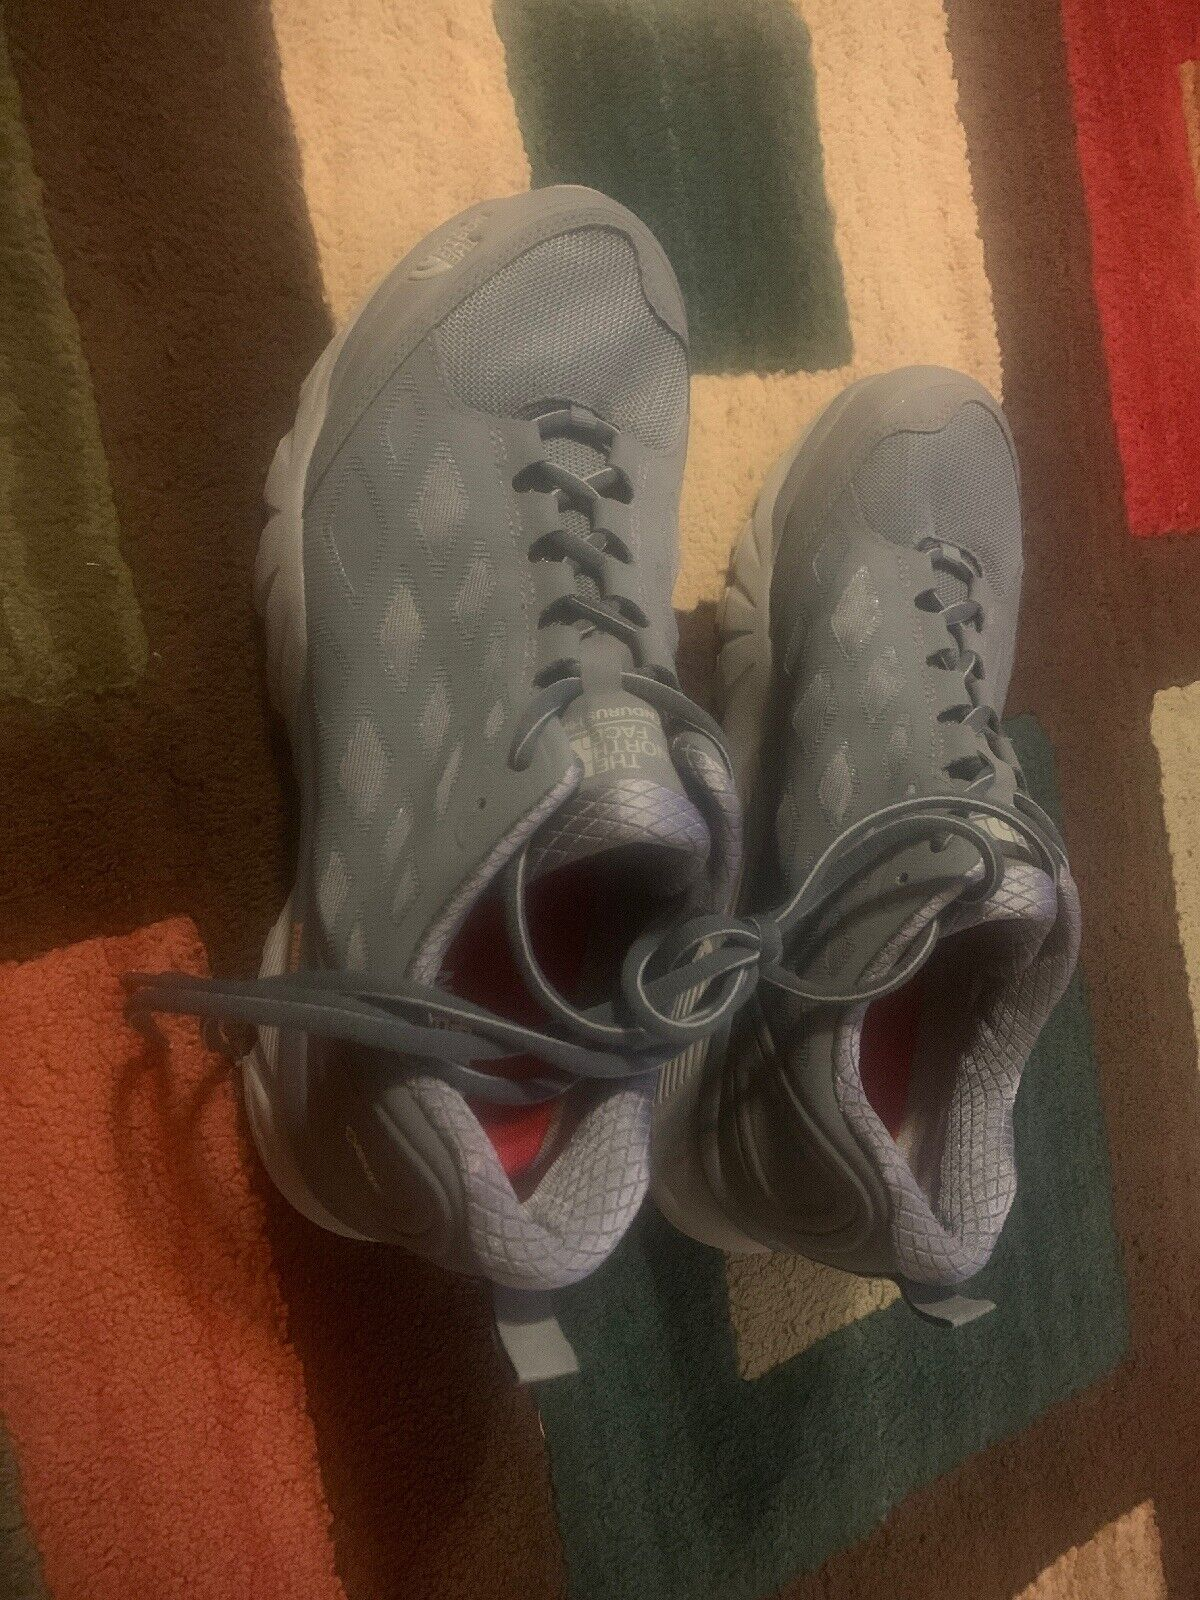 The North Face  Endurus Hike Mens Gore-Tex Hiking shoes Size 11.5  no tax